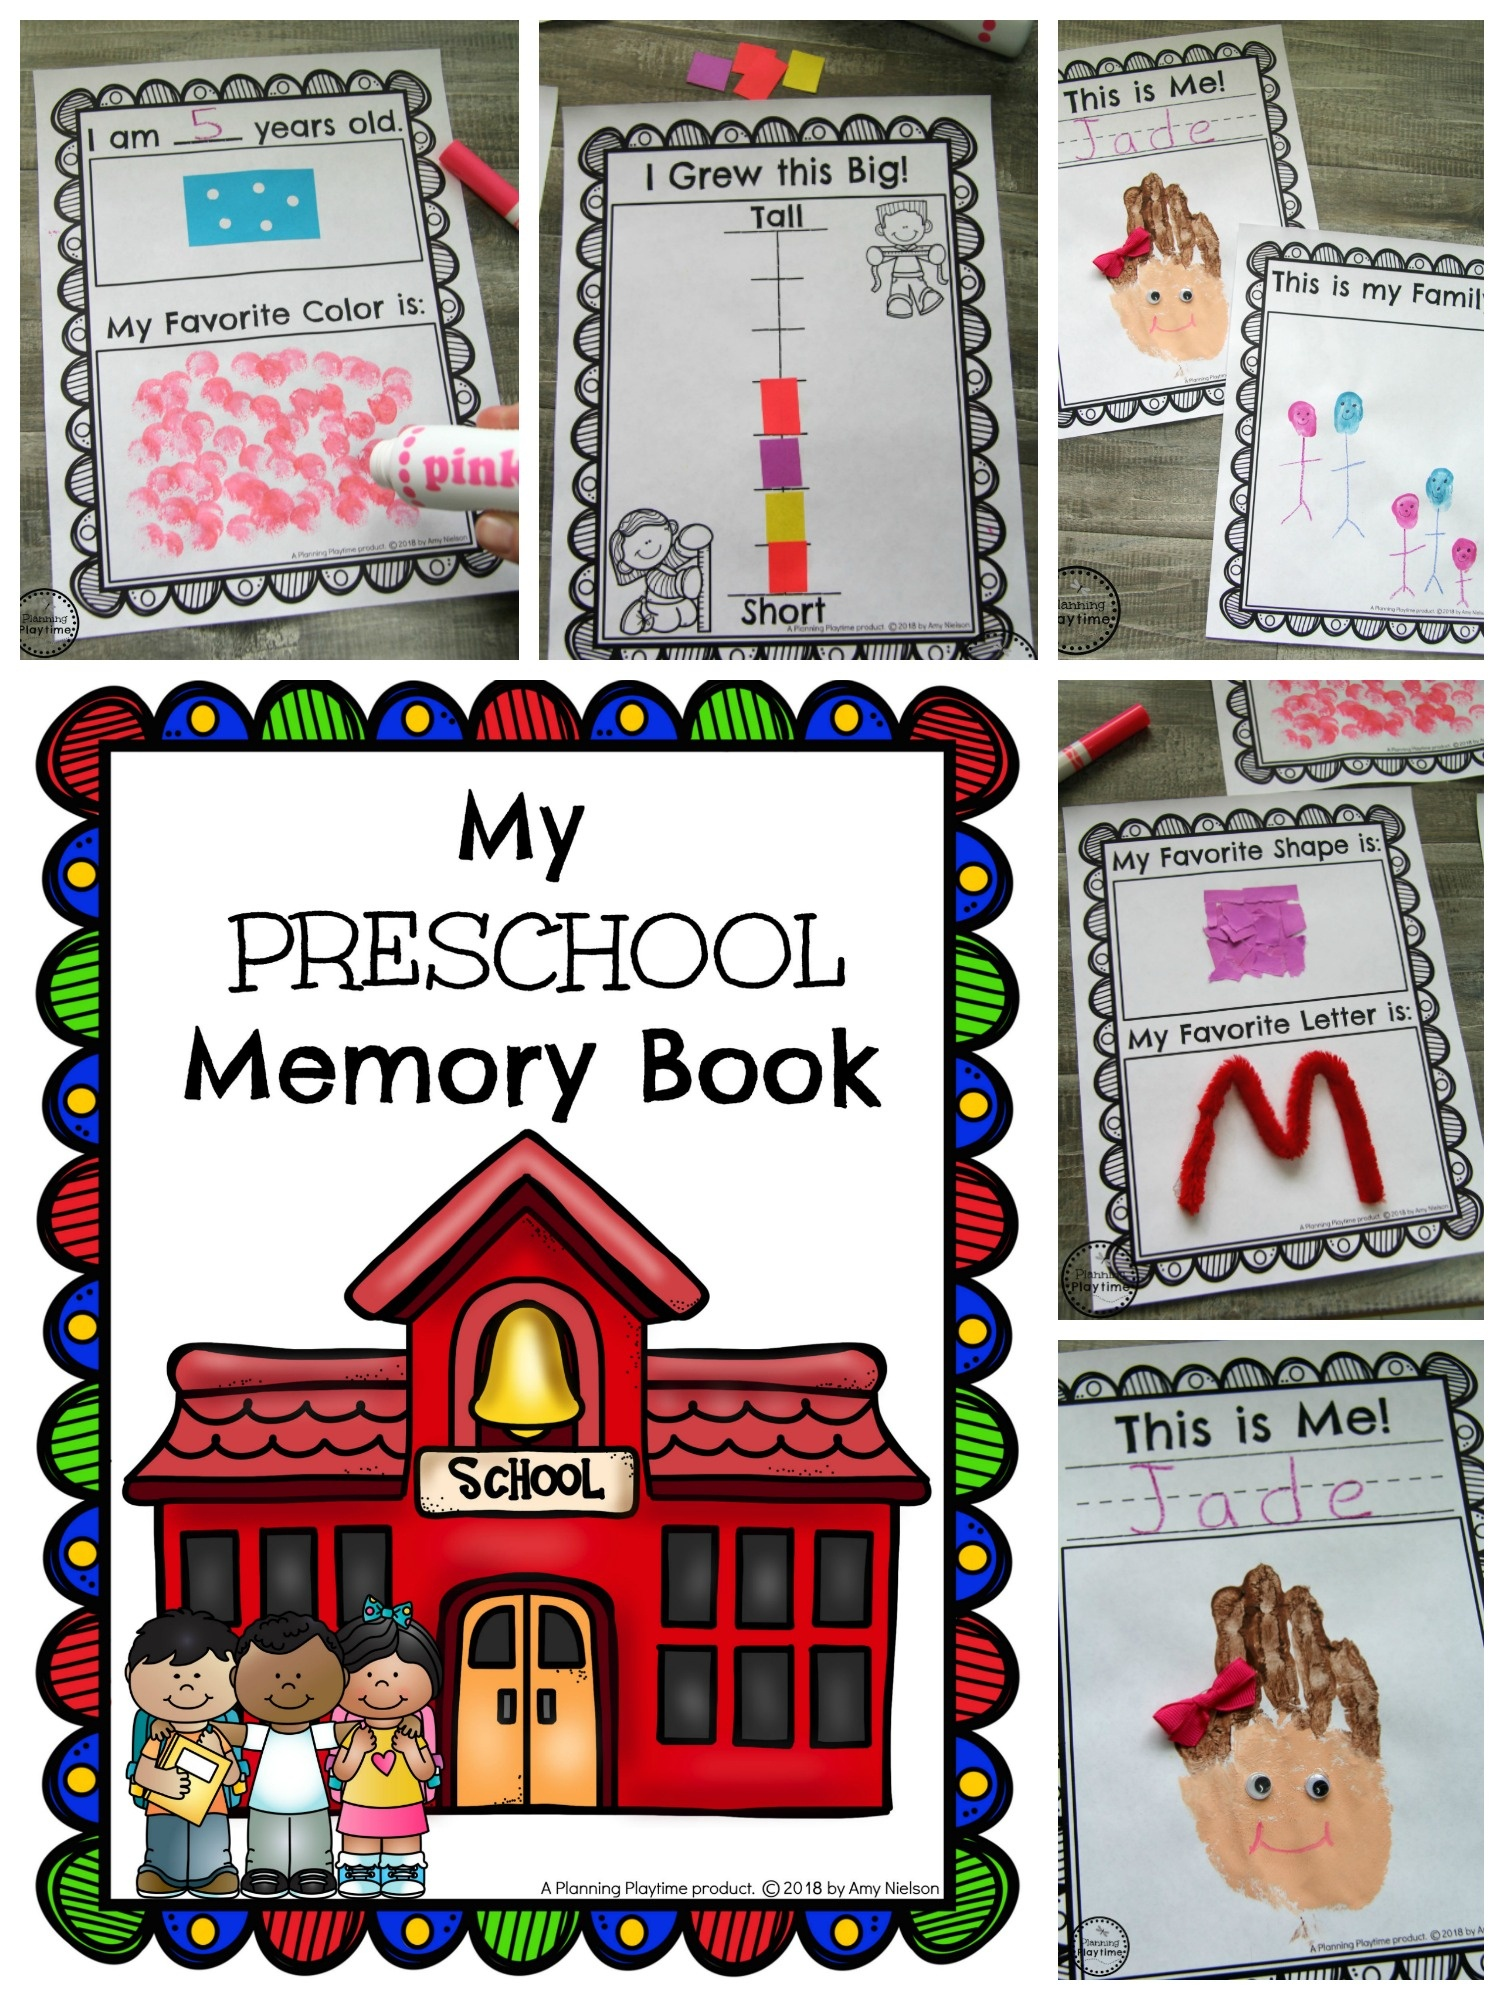 Preschool Memory Book - Planning Playtime - Free Printable Preschool Memory Book